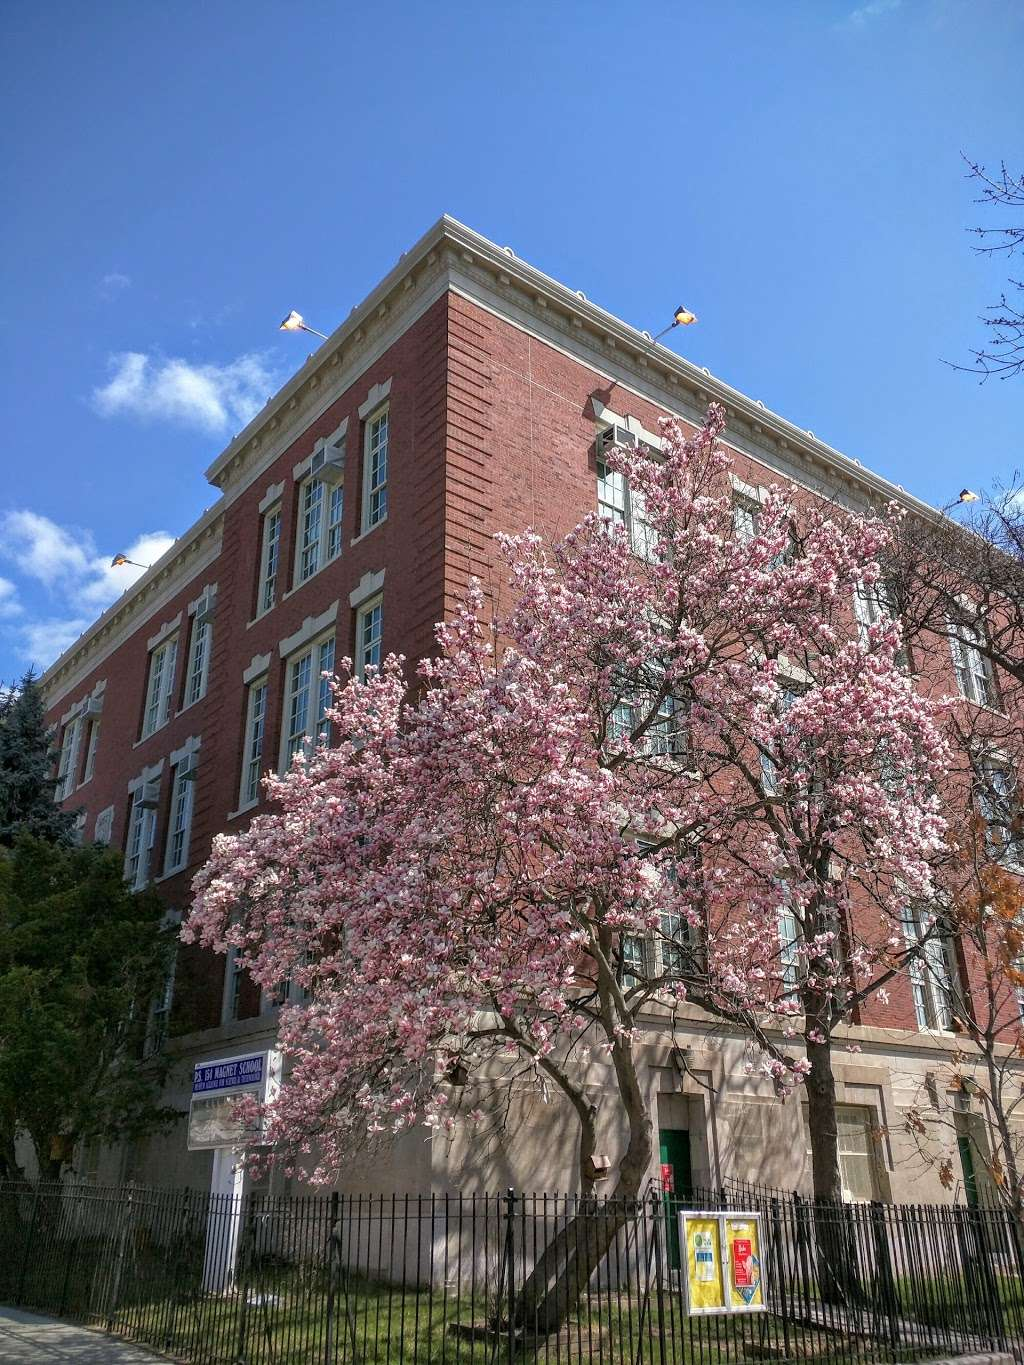 PS154 - The Windsor Terrace Elementary School - school  | Photo 1 of 1 | Address: 1625 11th Ave, Brooklyn, NY 11215, USA | Phone: (718) 768-0057